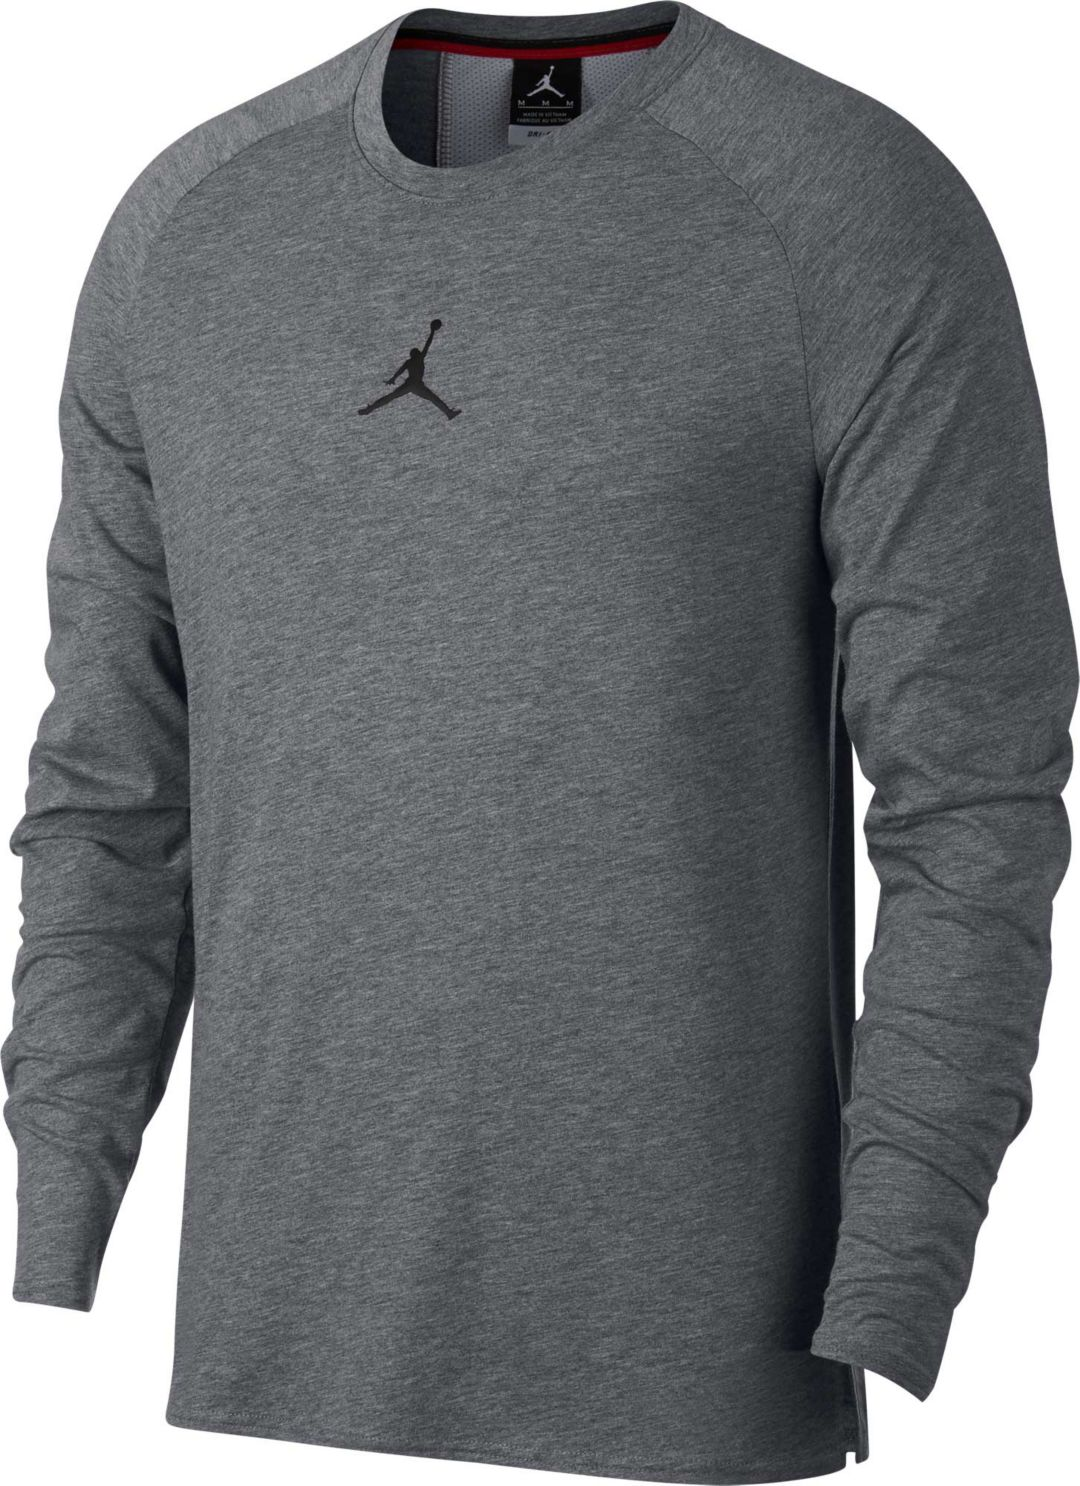 b79a243a Jordan Men's Dry 23 Alpha Long Sleeve Shirt | DICK'S Sporting Goods